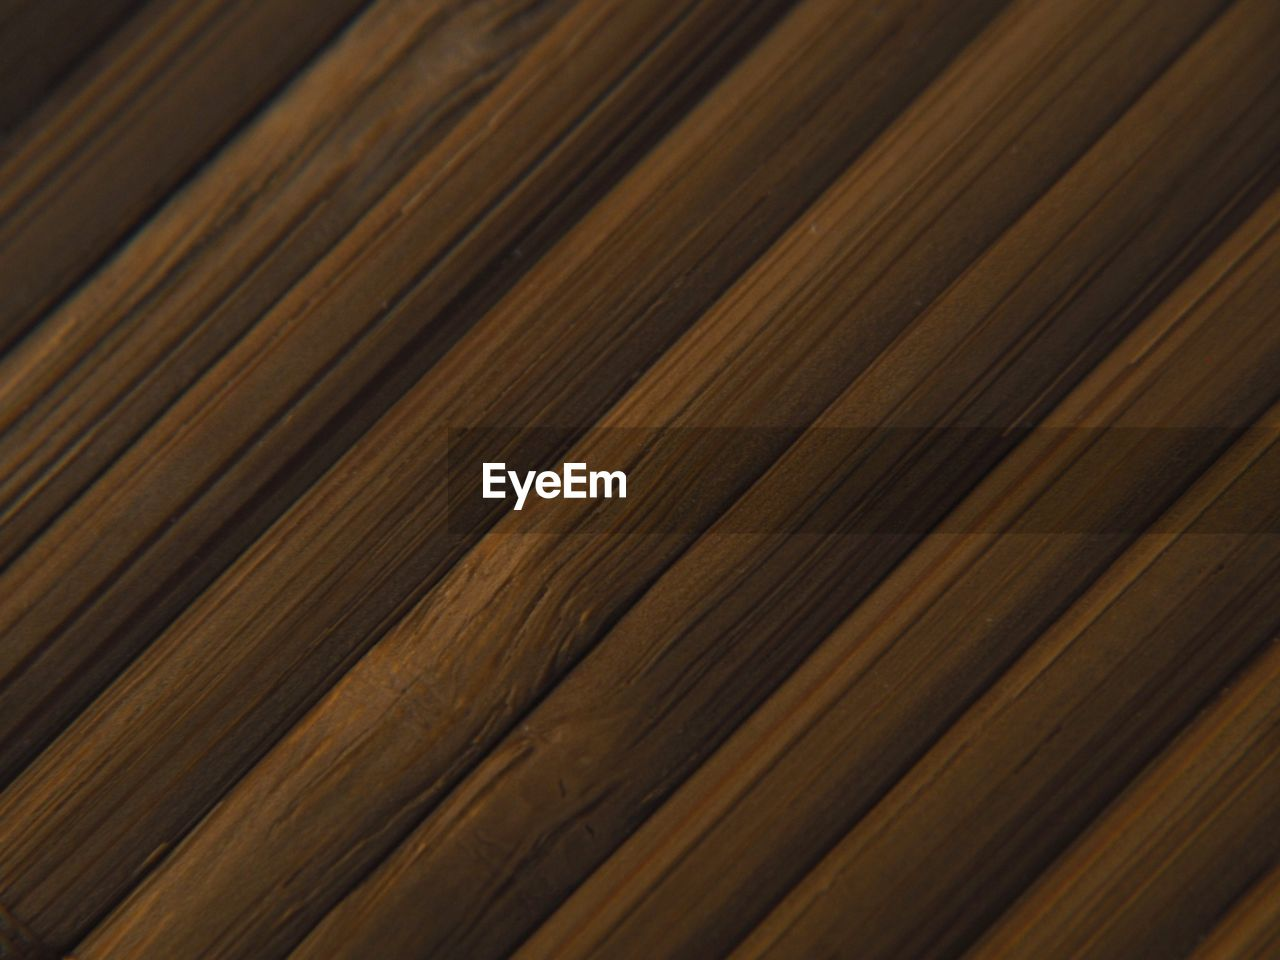 backgrounds, wood - material, pattern, full frame, brown, indoors, wood, textured, no people, flooring, hardwood floor, close-up, high angle view, table, wood grain, design, repetition, plank, parquet floor, nature